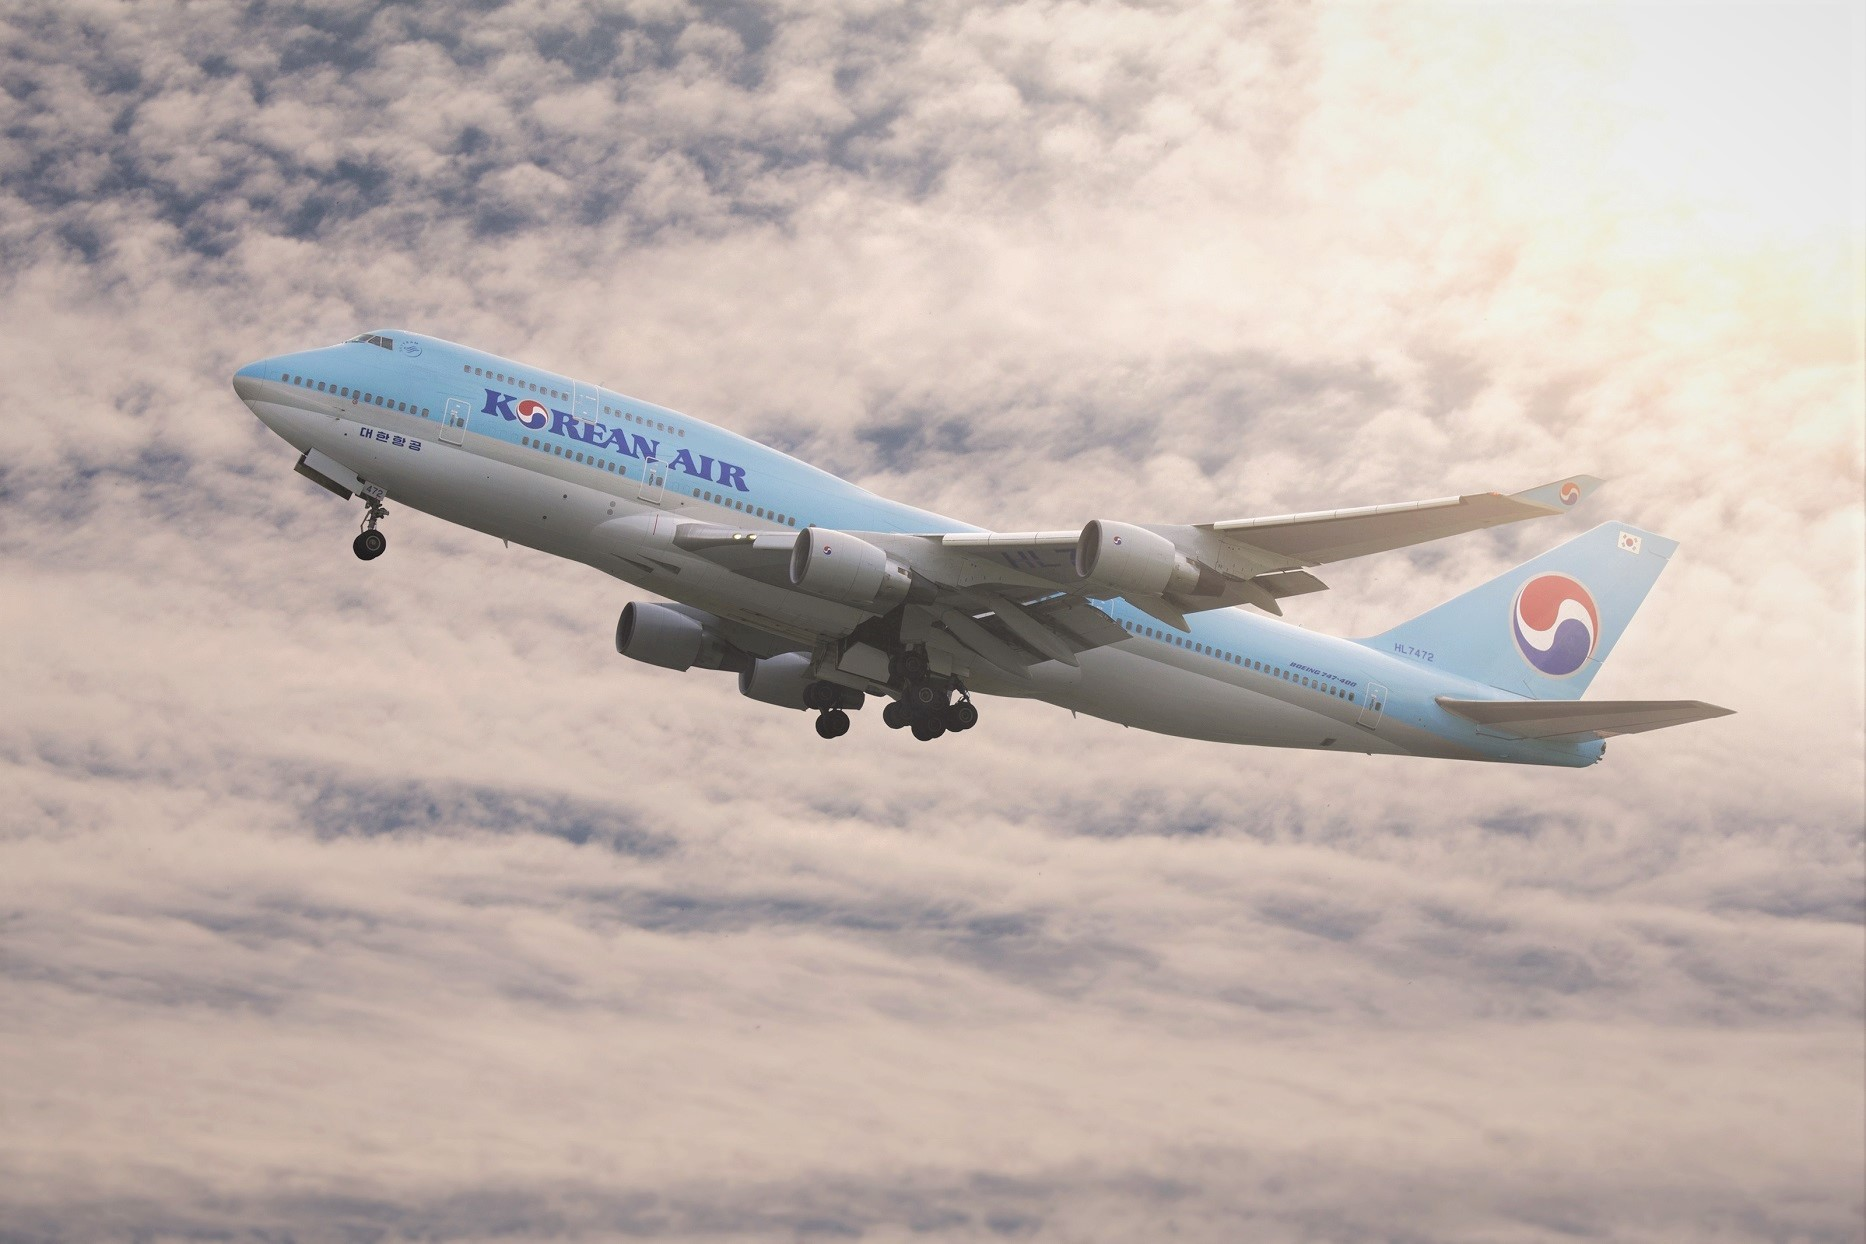 Korean Air Airlines Plane Flying Clouds